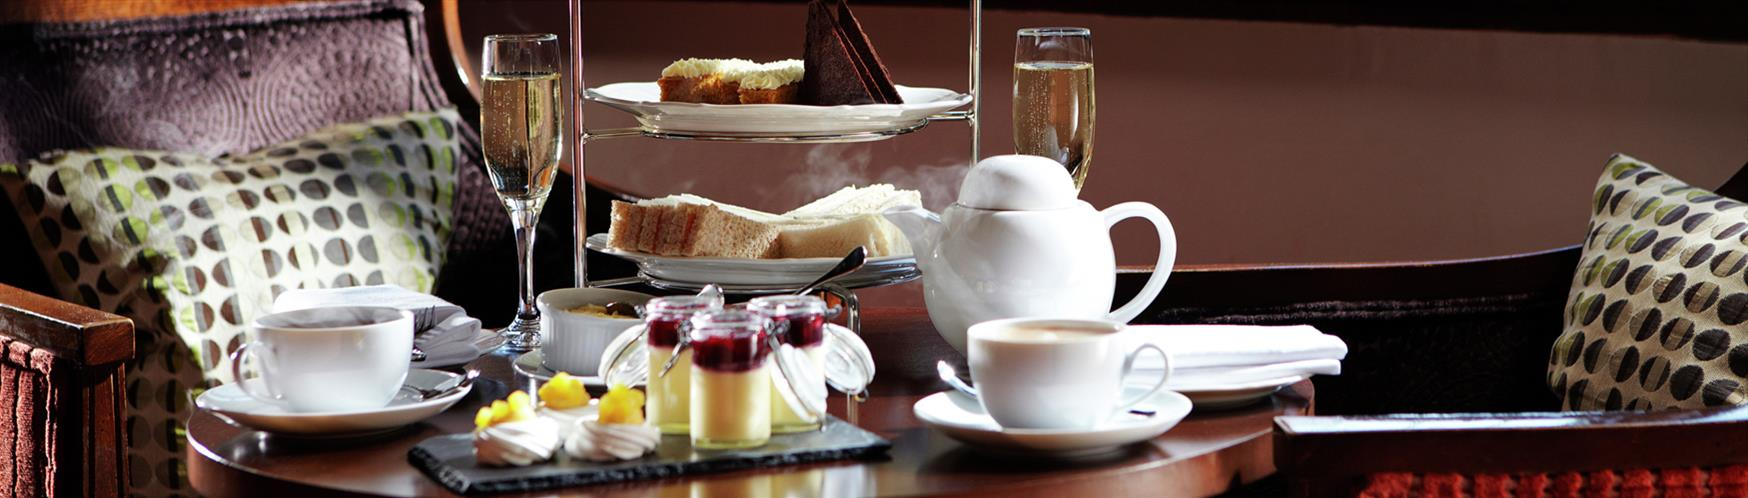 Indulge in a spot of afternoon tea